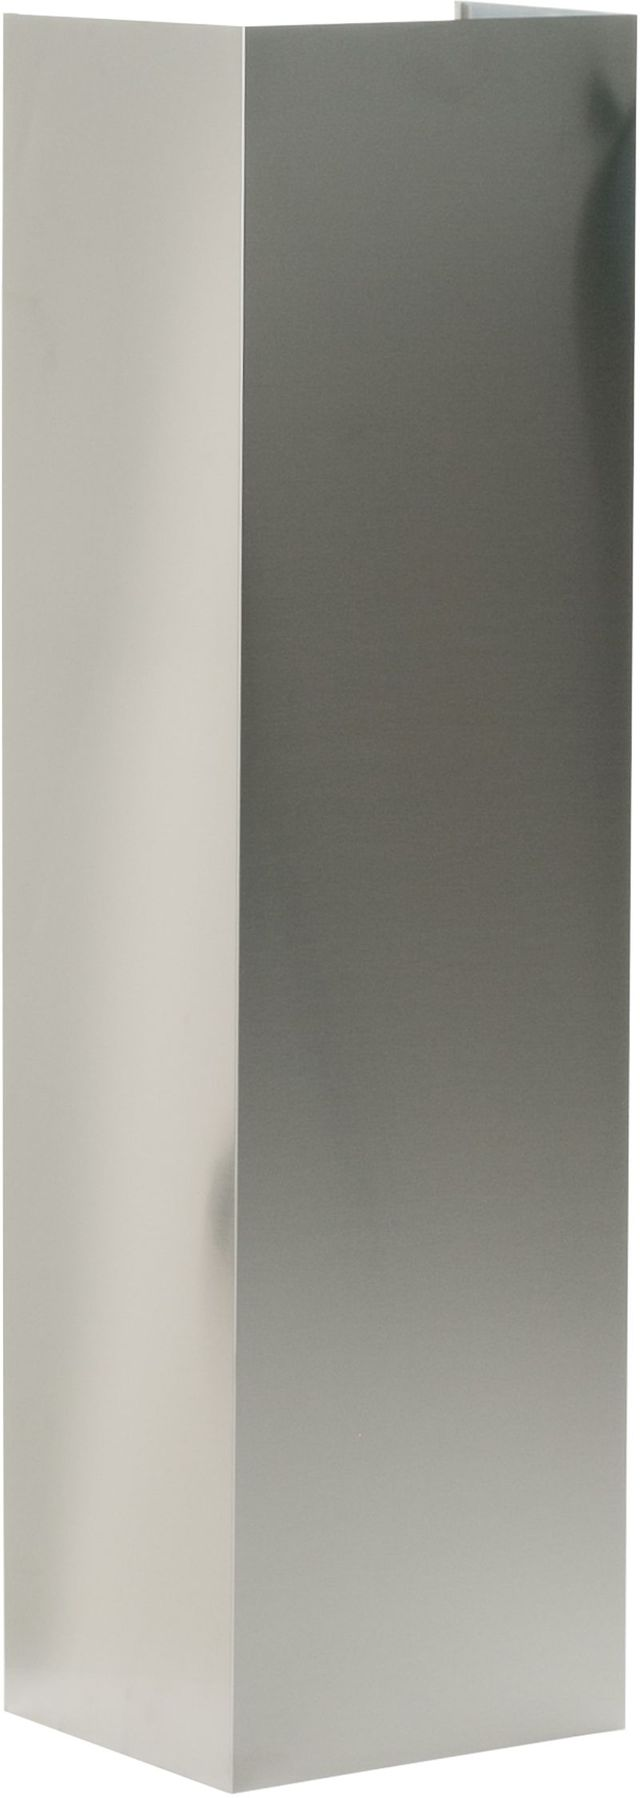 Monogram® 12' Ceiling Duct Cover Accessory-ZX83012